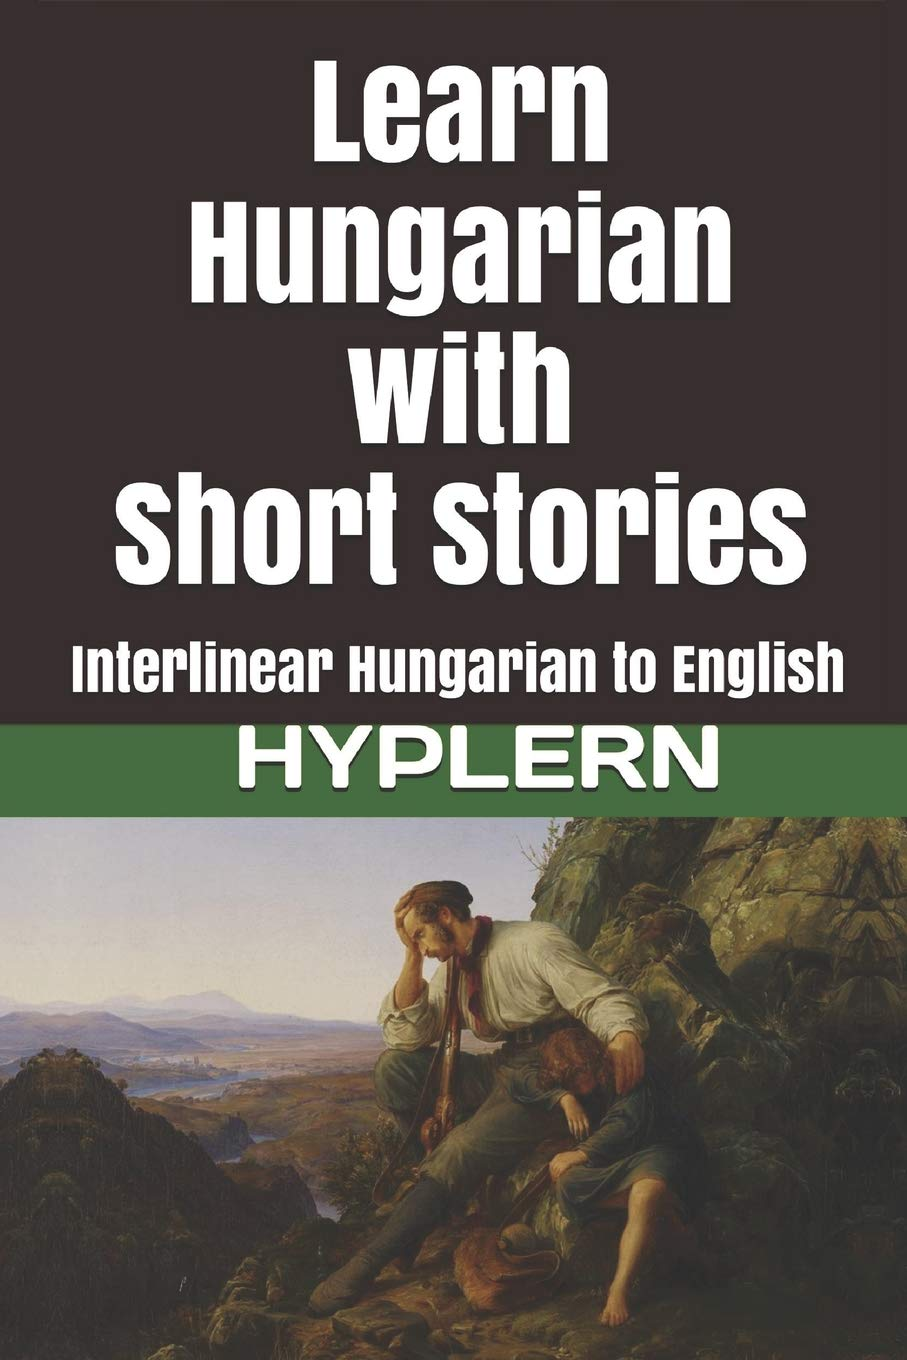 Learn Hungarian With Short Stories  Interlinear Hungarian To English  Learn Hungarian With Interlinear Stories For Beginners And Advanced Readers Band 3